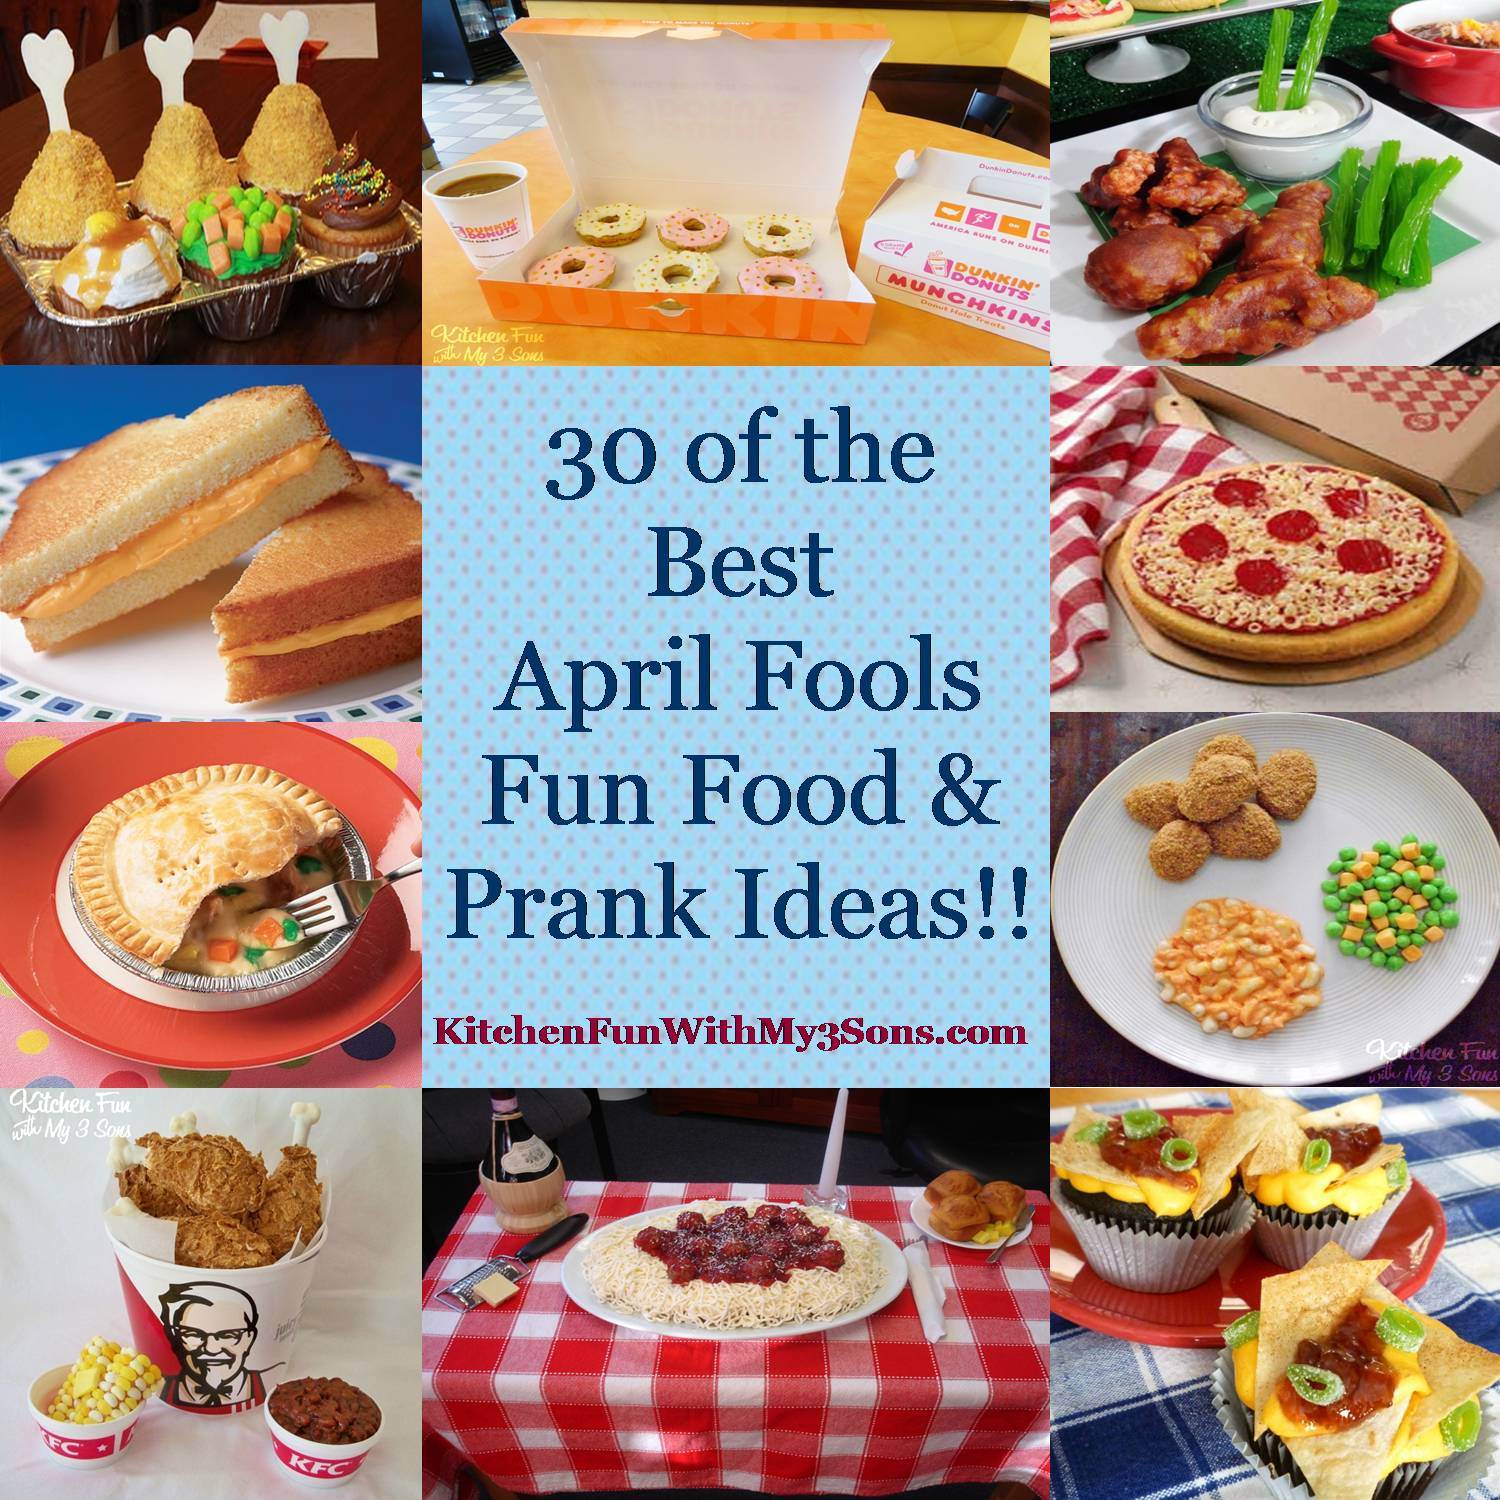 30 of the best april fools fun food & prank ideas! - kitchen fun